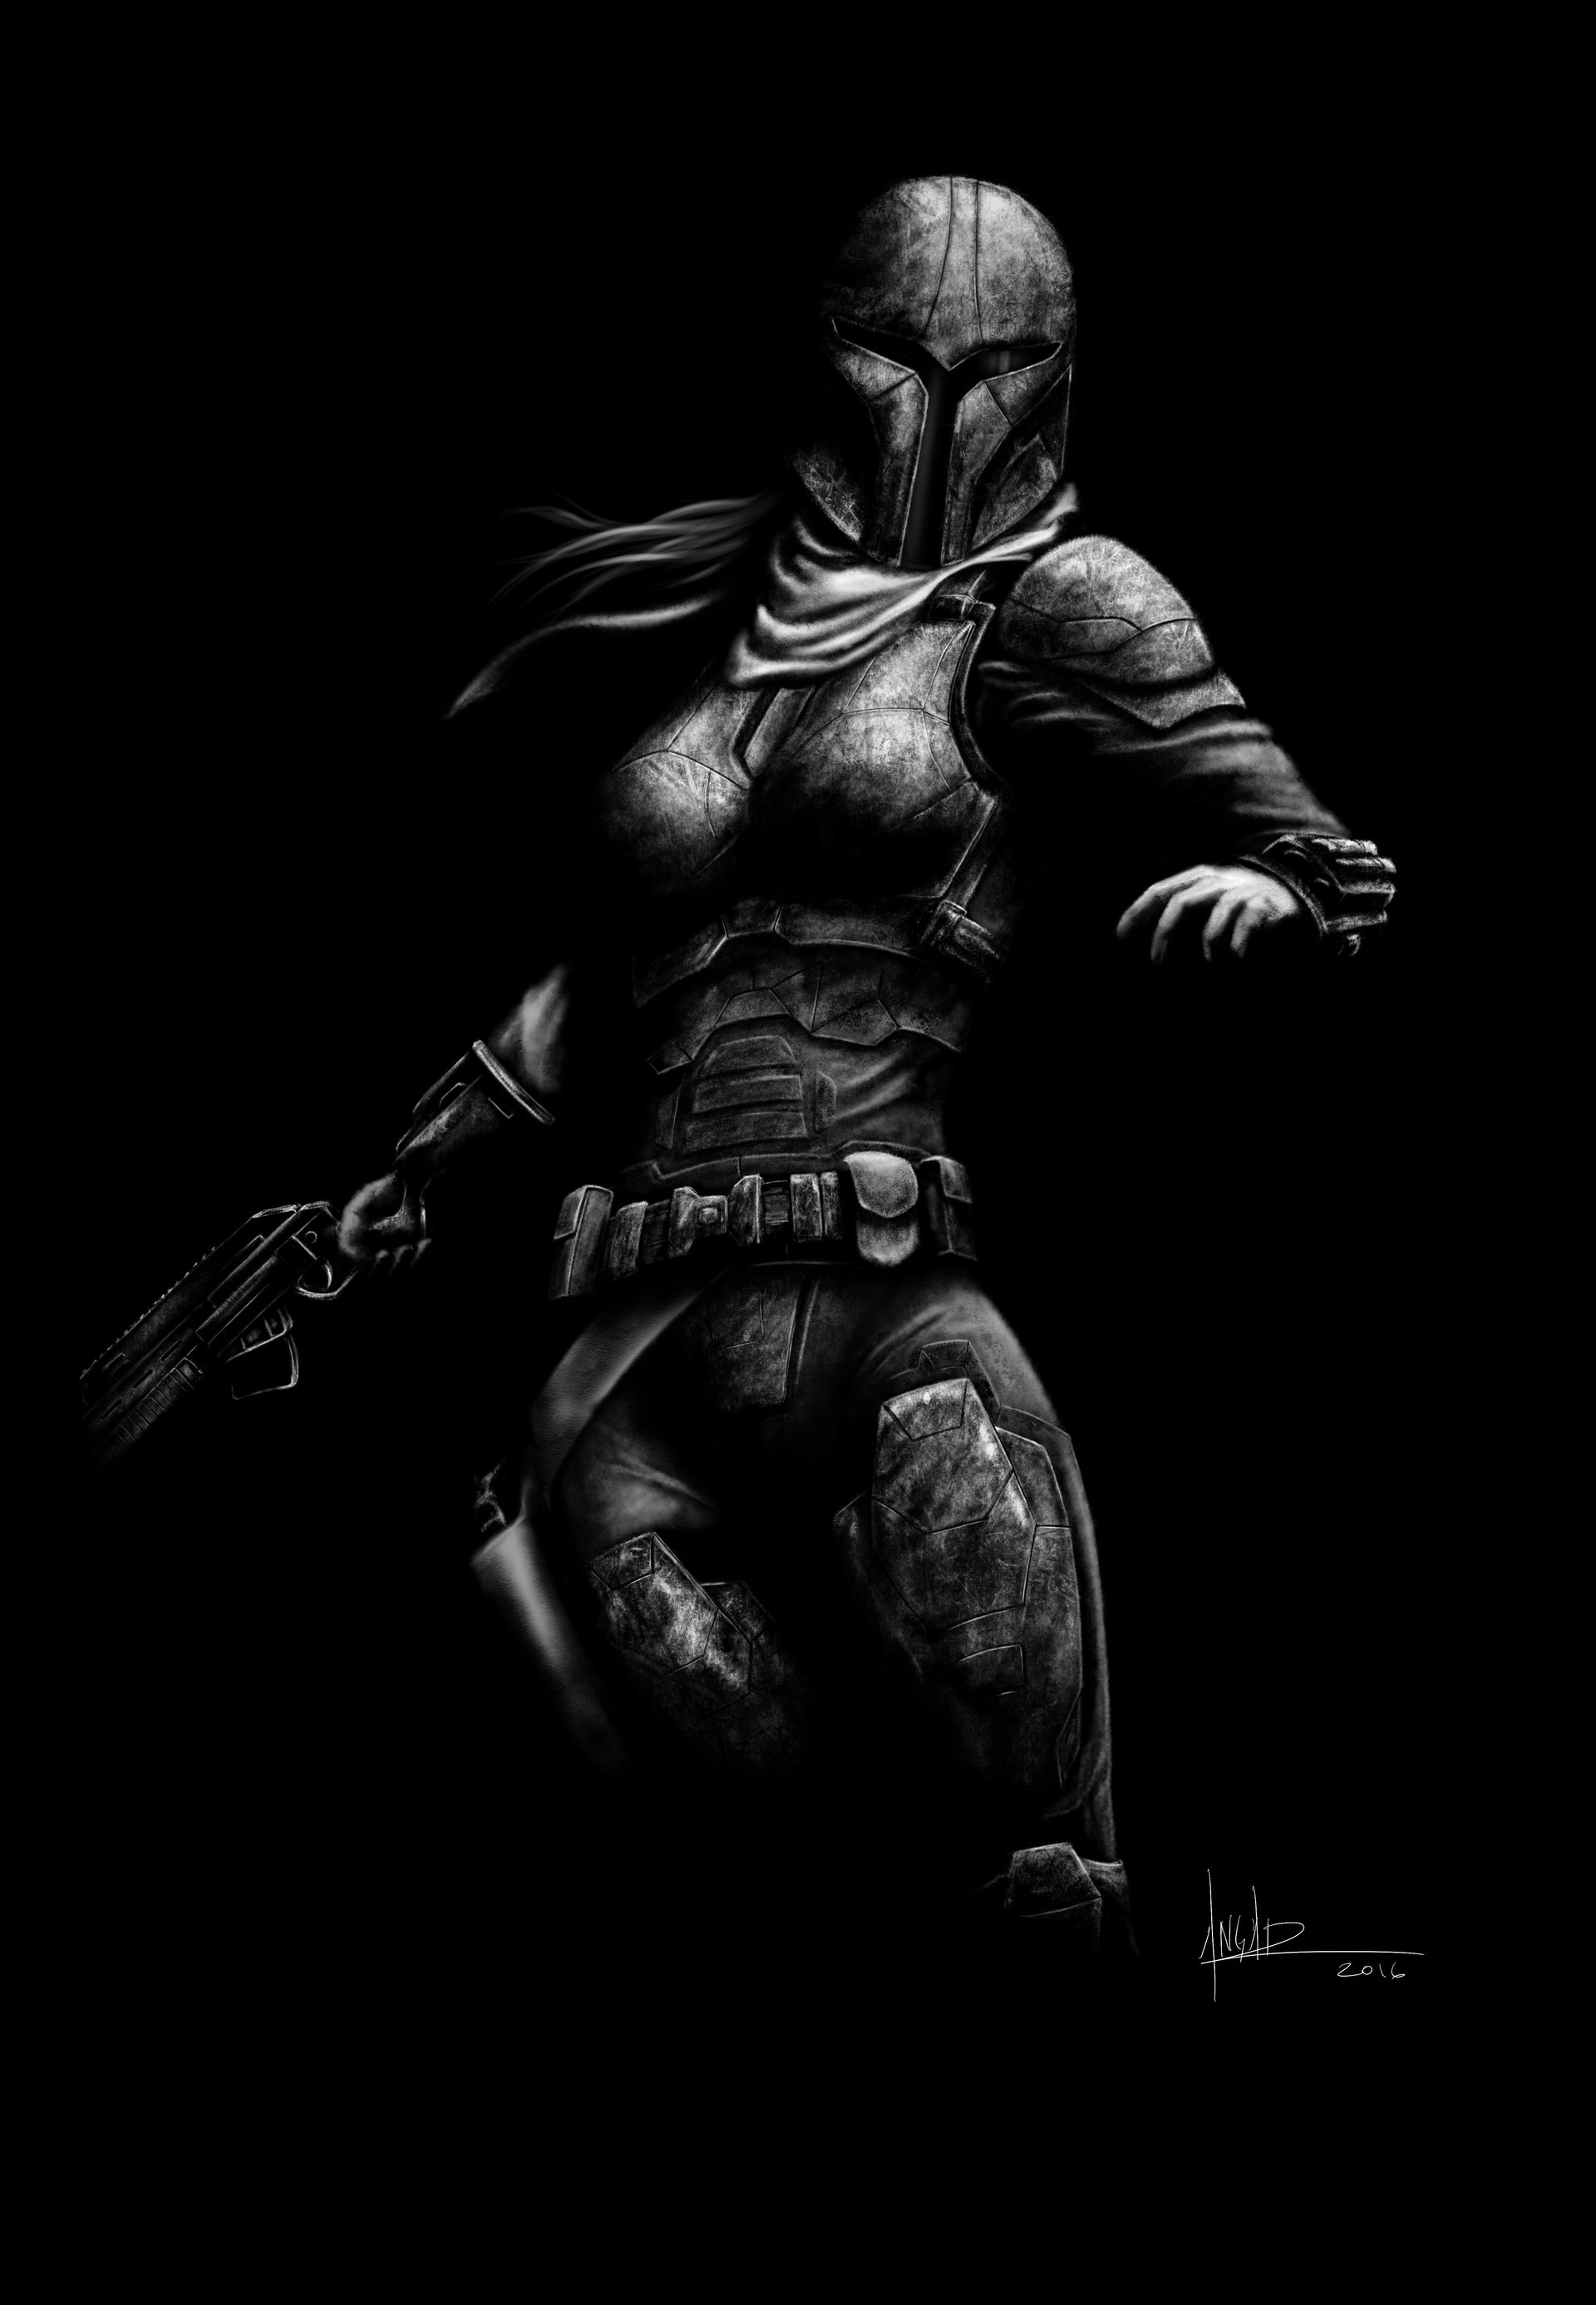 This is character that I created based on the Mandalorian warriors from the Star  Wars Universe.